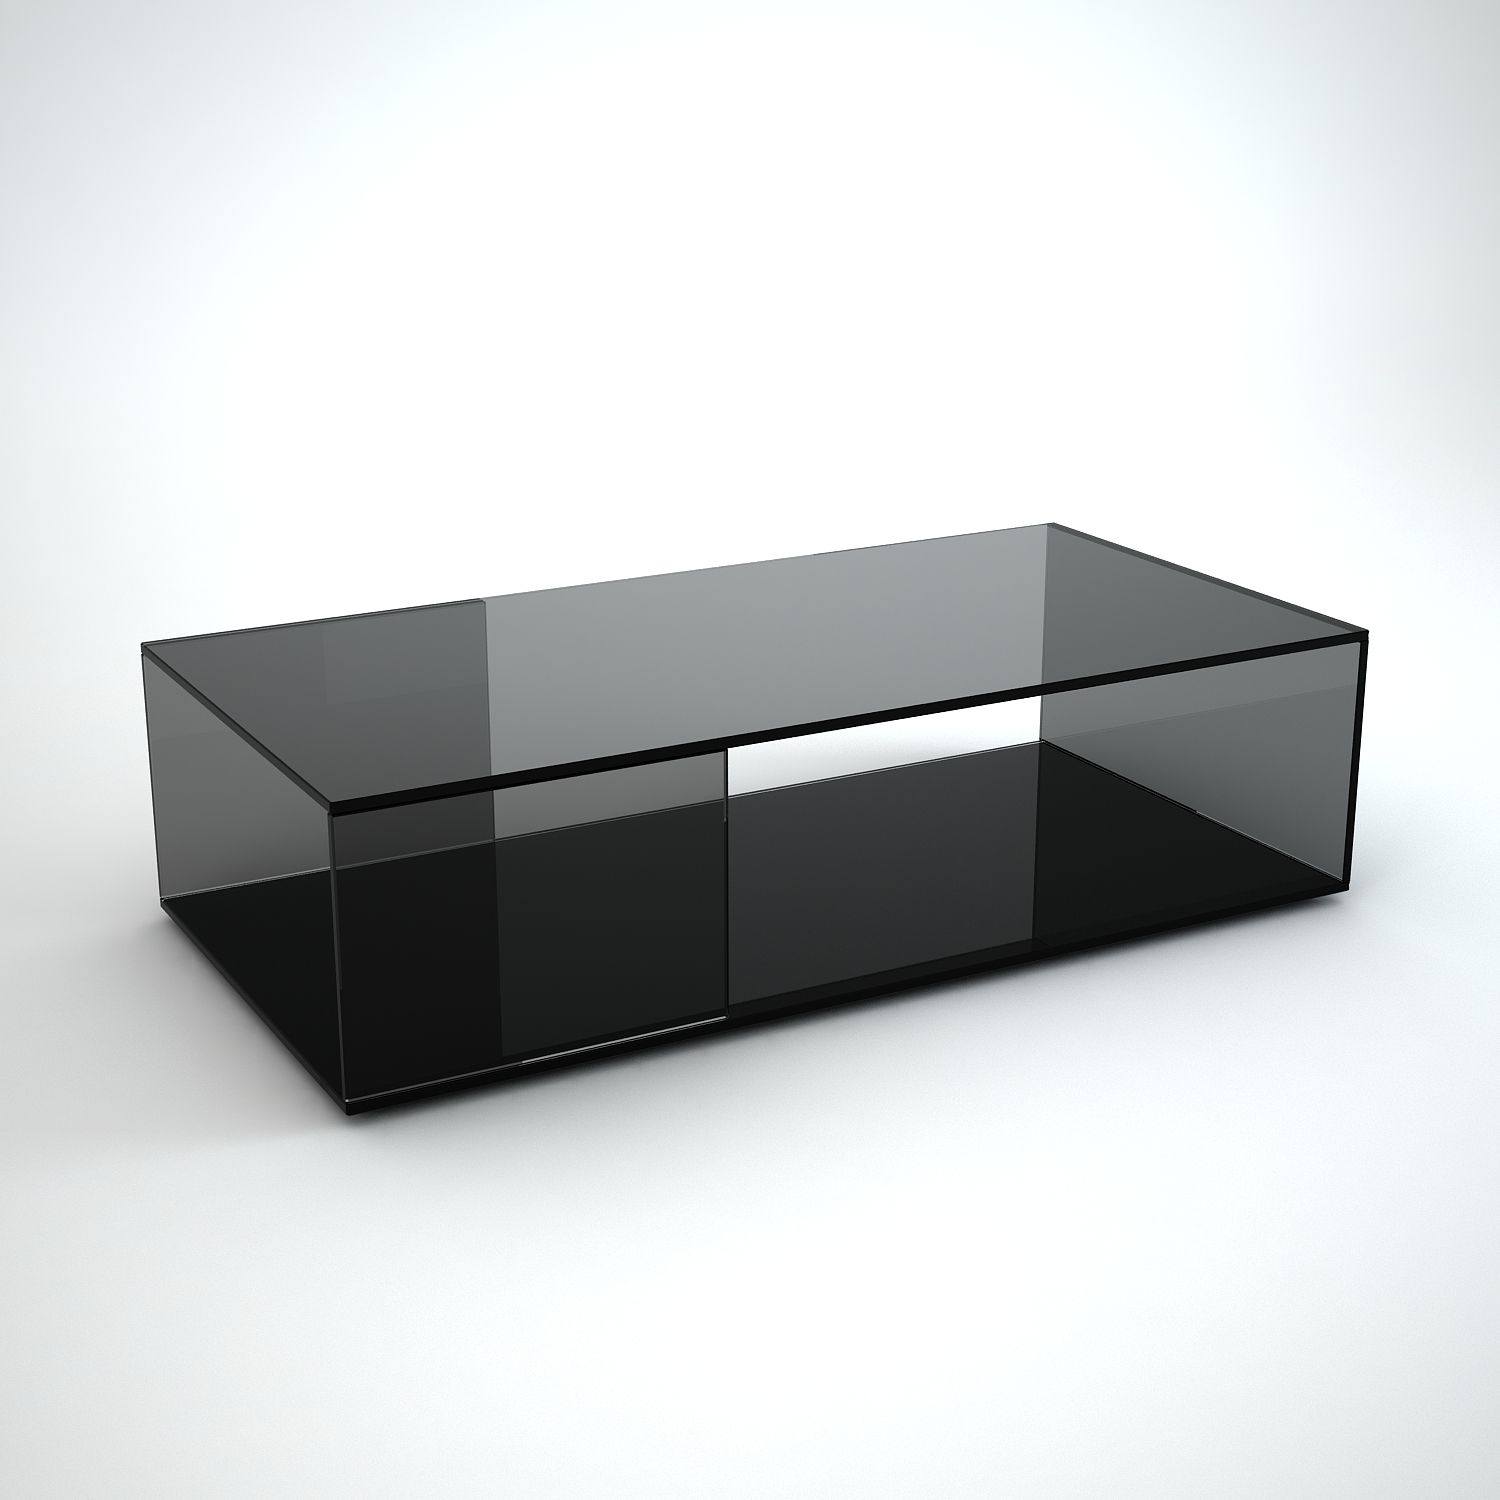 Tifino Rectangular Grey Tint Glass Coffee Table By Klarity Black